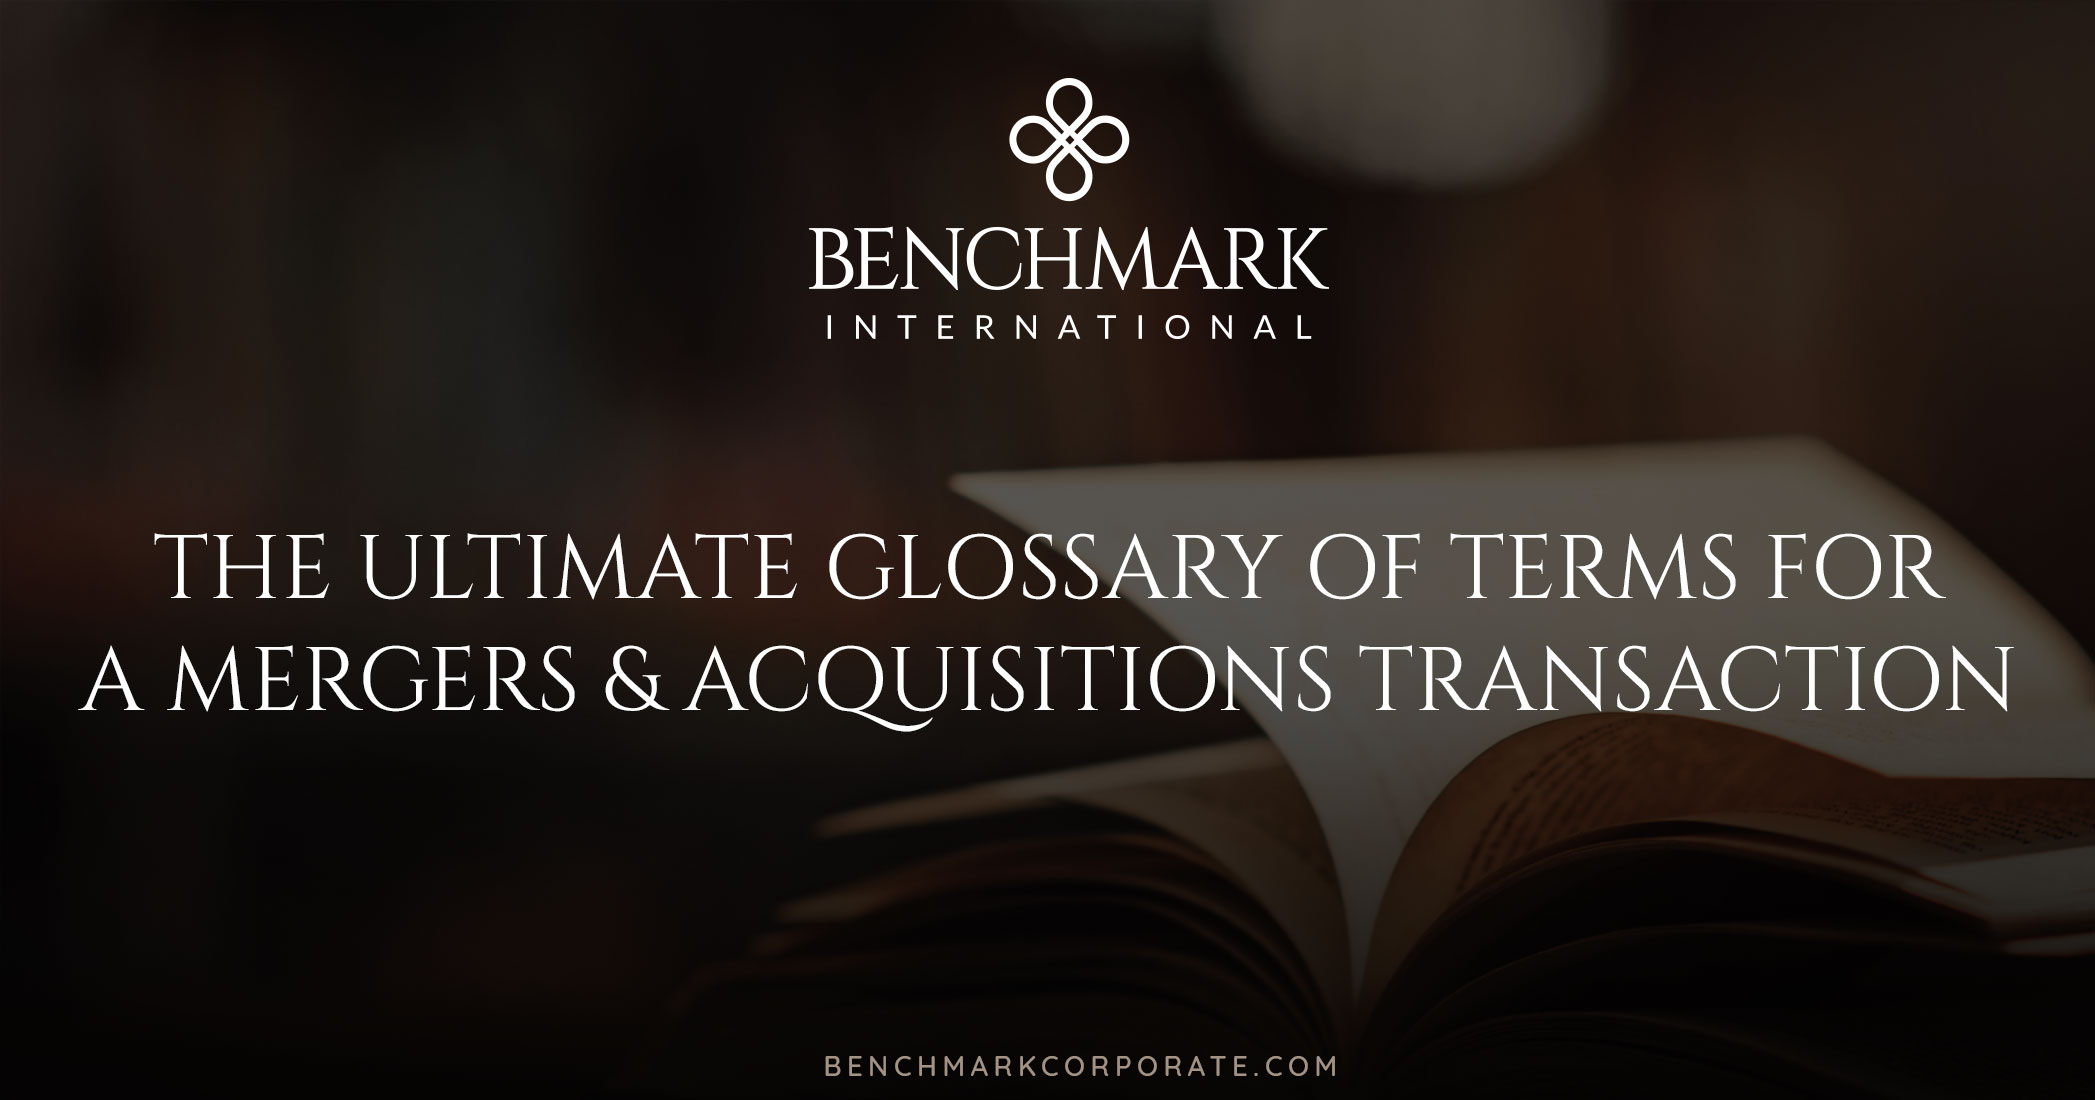 The Ultimate Glossary of Terms for a Mergers & Acquisitions Transaction